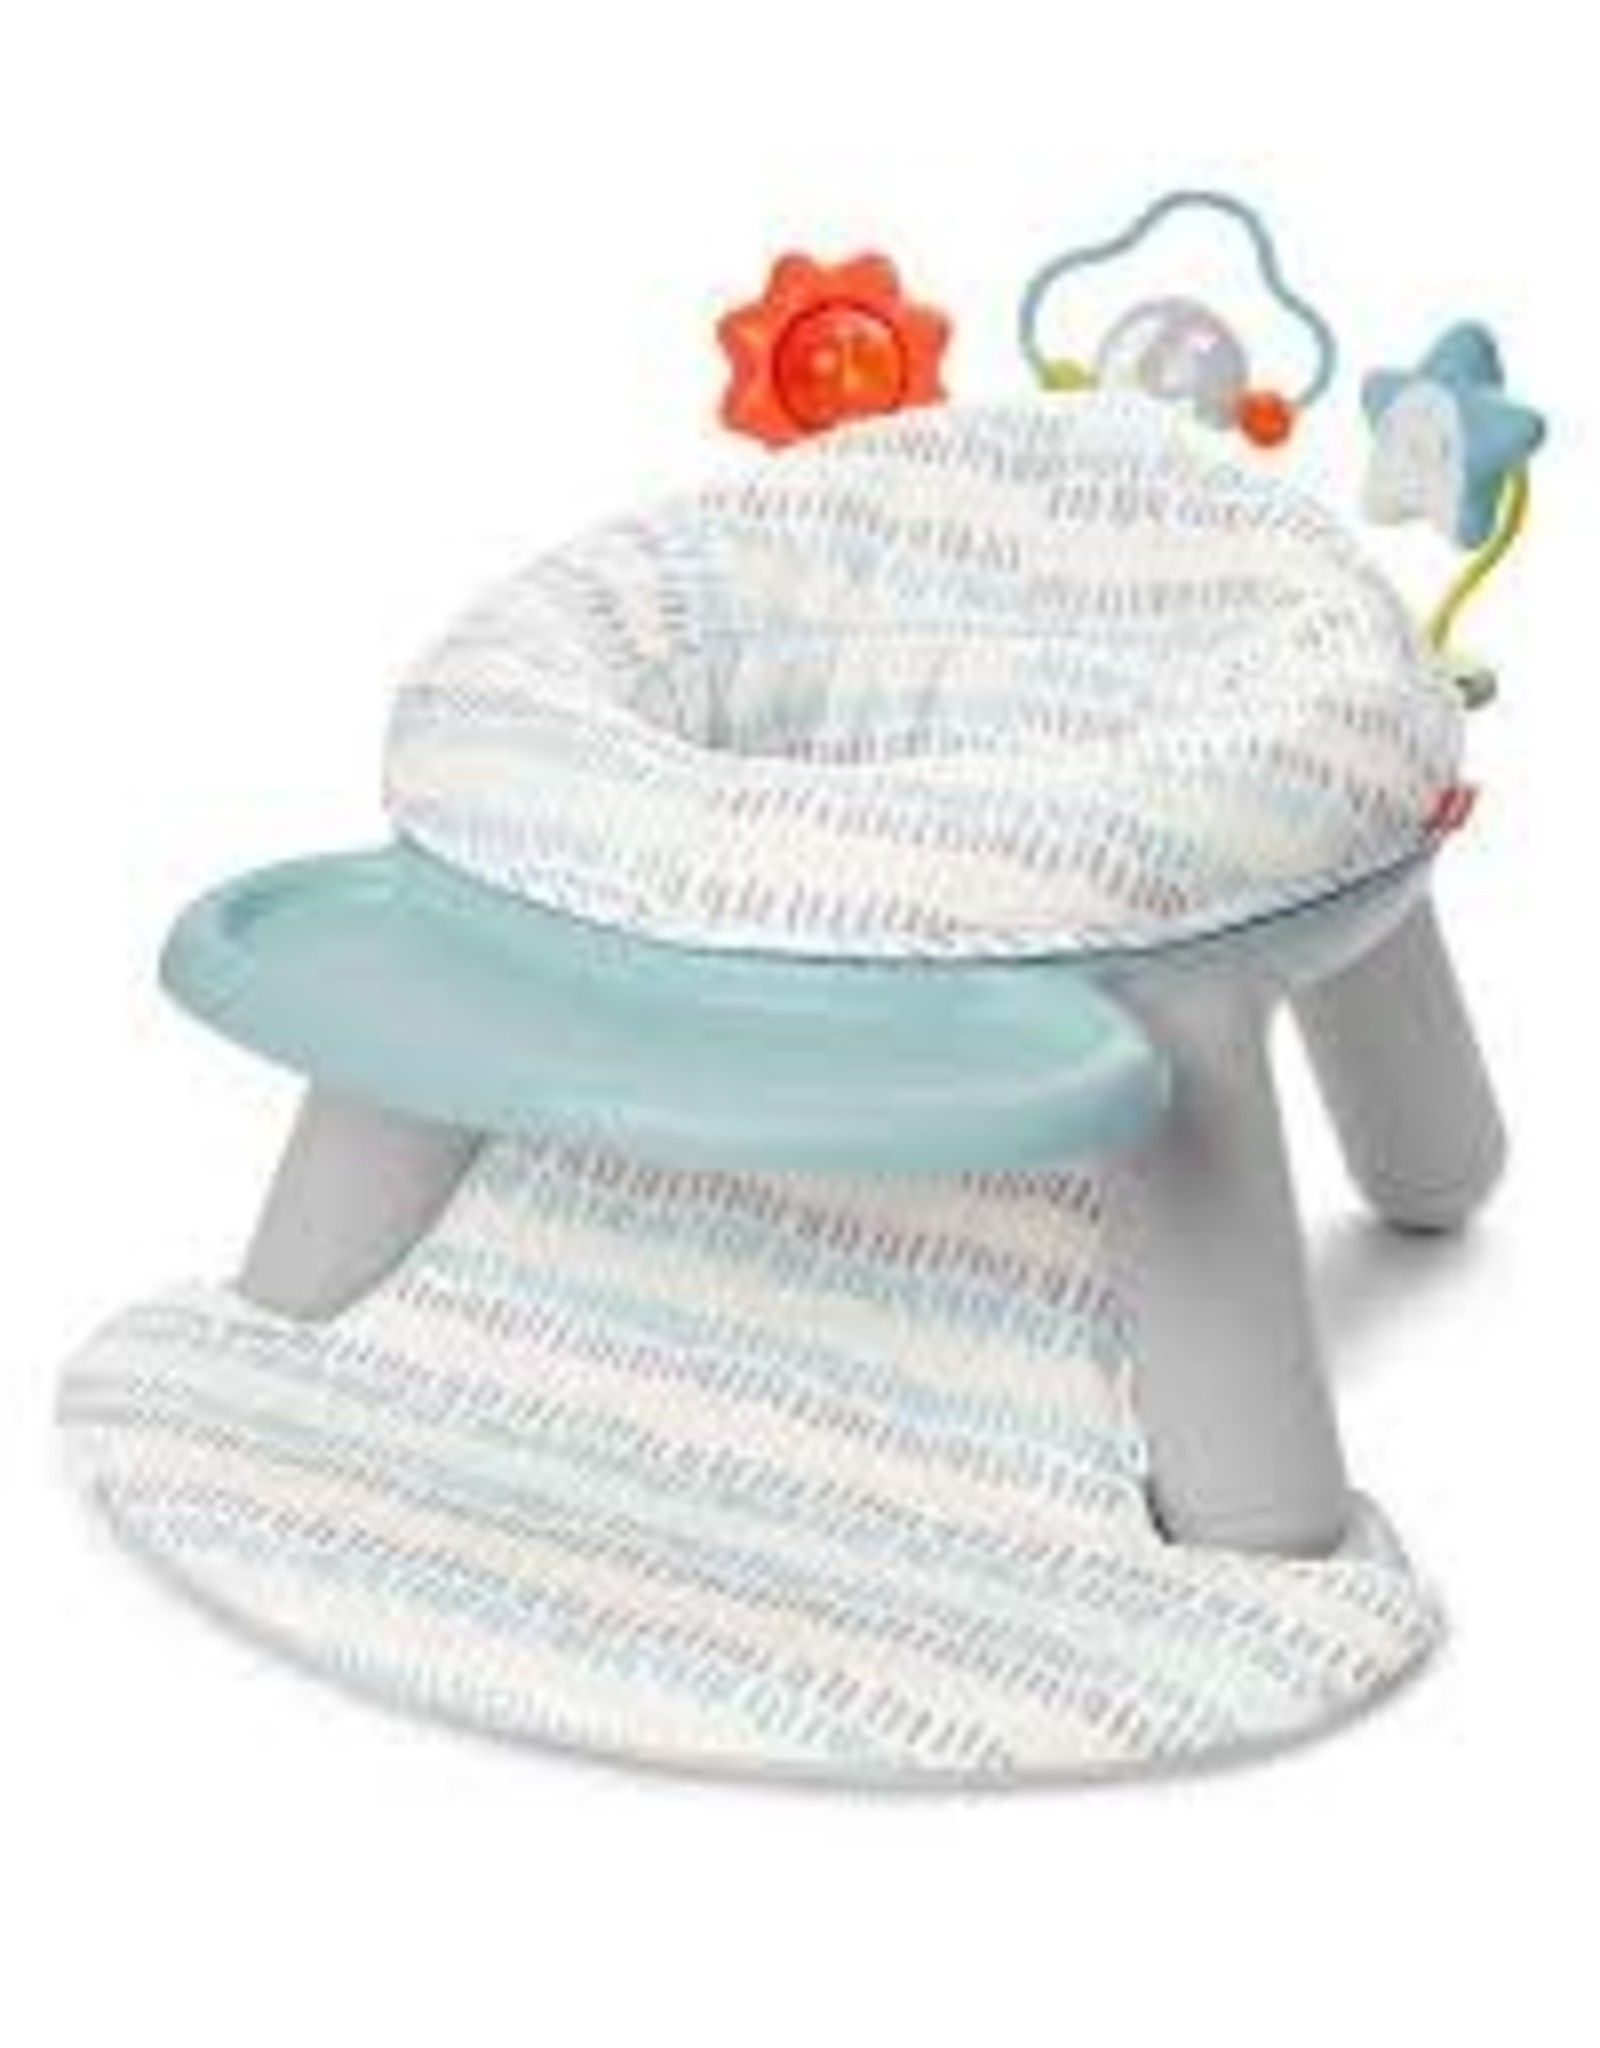 Skip Hop 2-in-1 Activity Infant Seat, Silver Lining Cloud